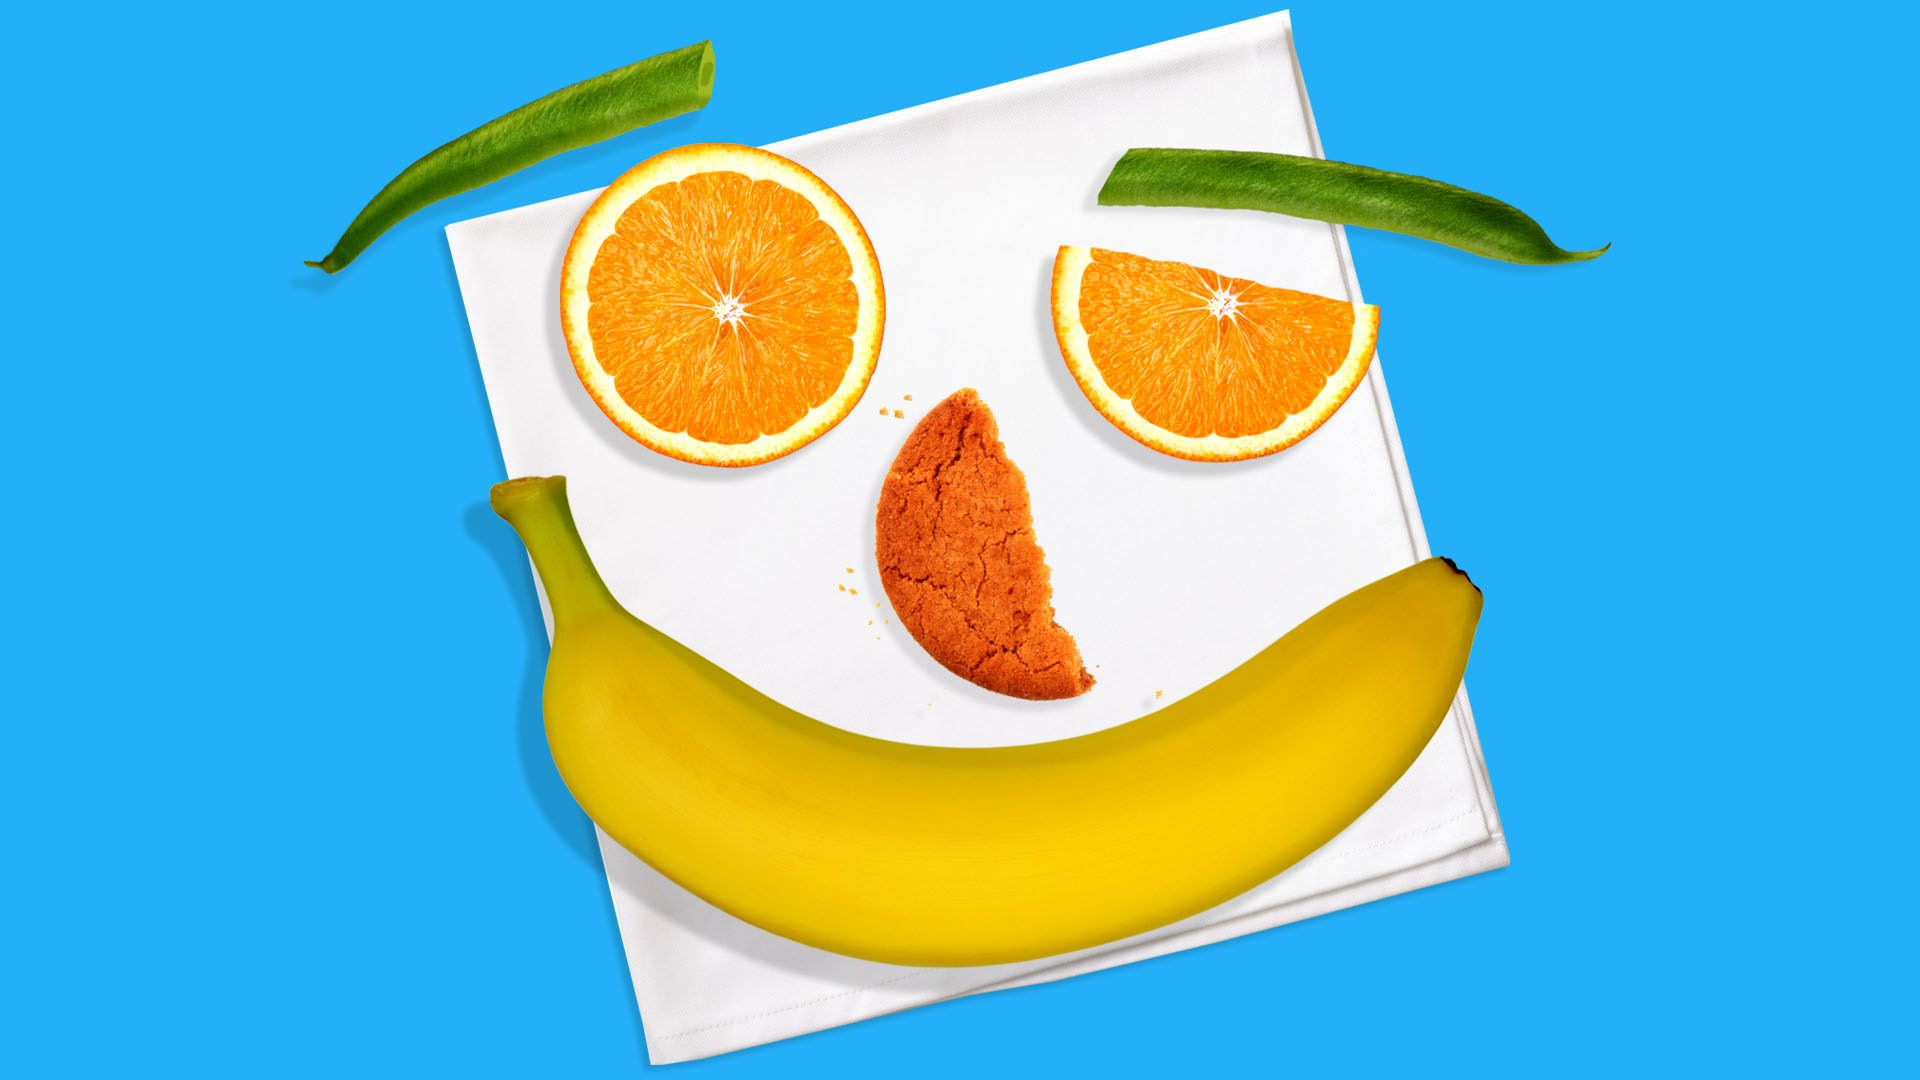 Illustration of a lunch shaped like a smiling face